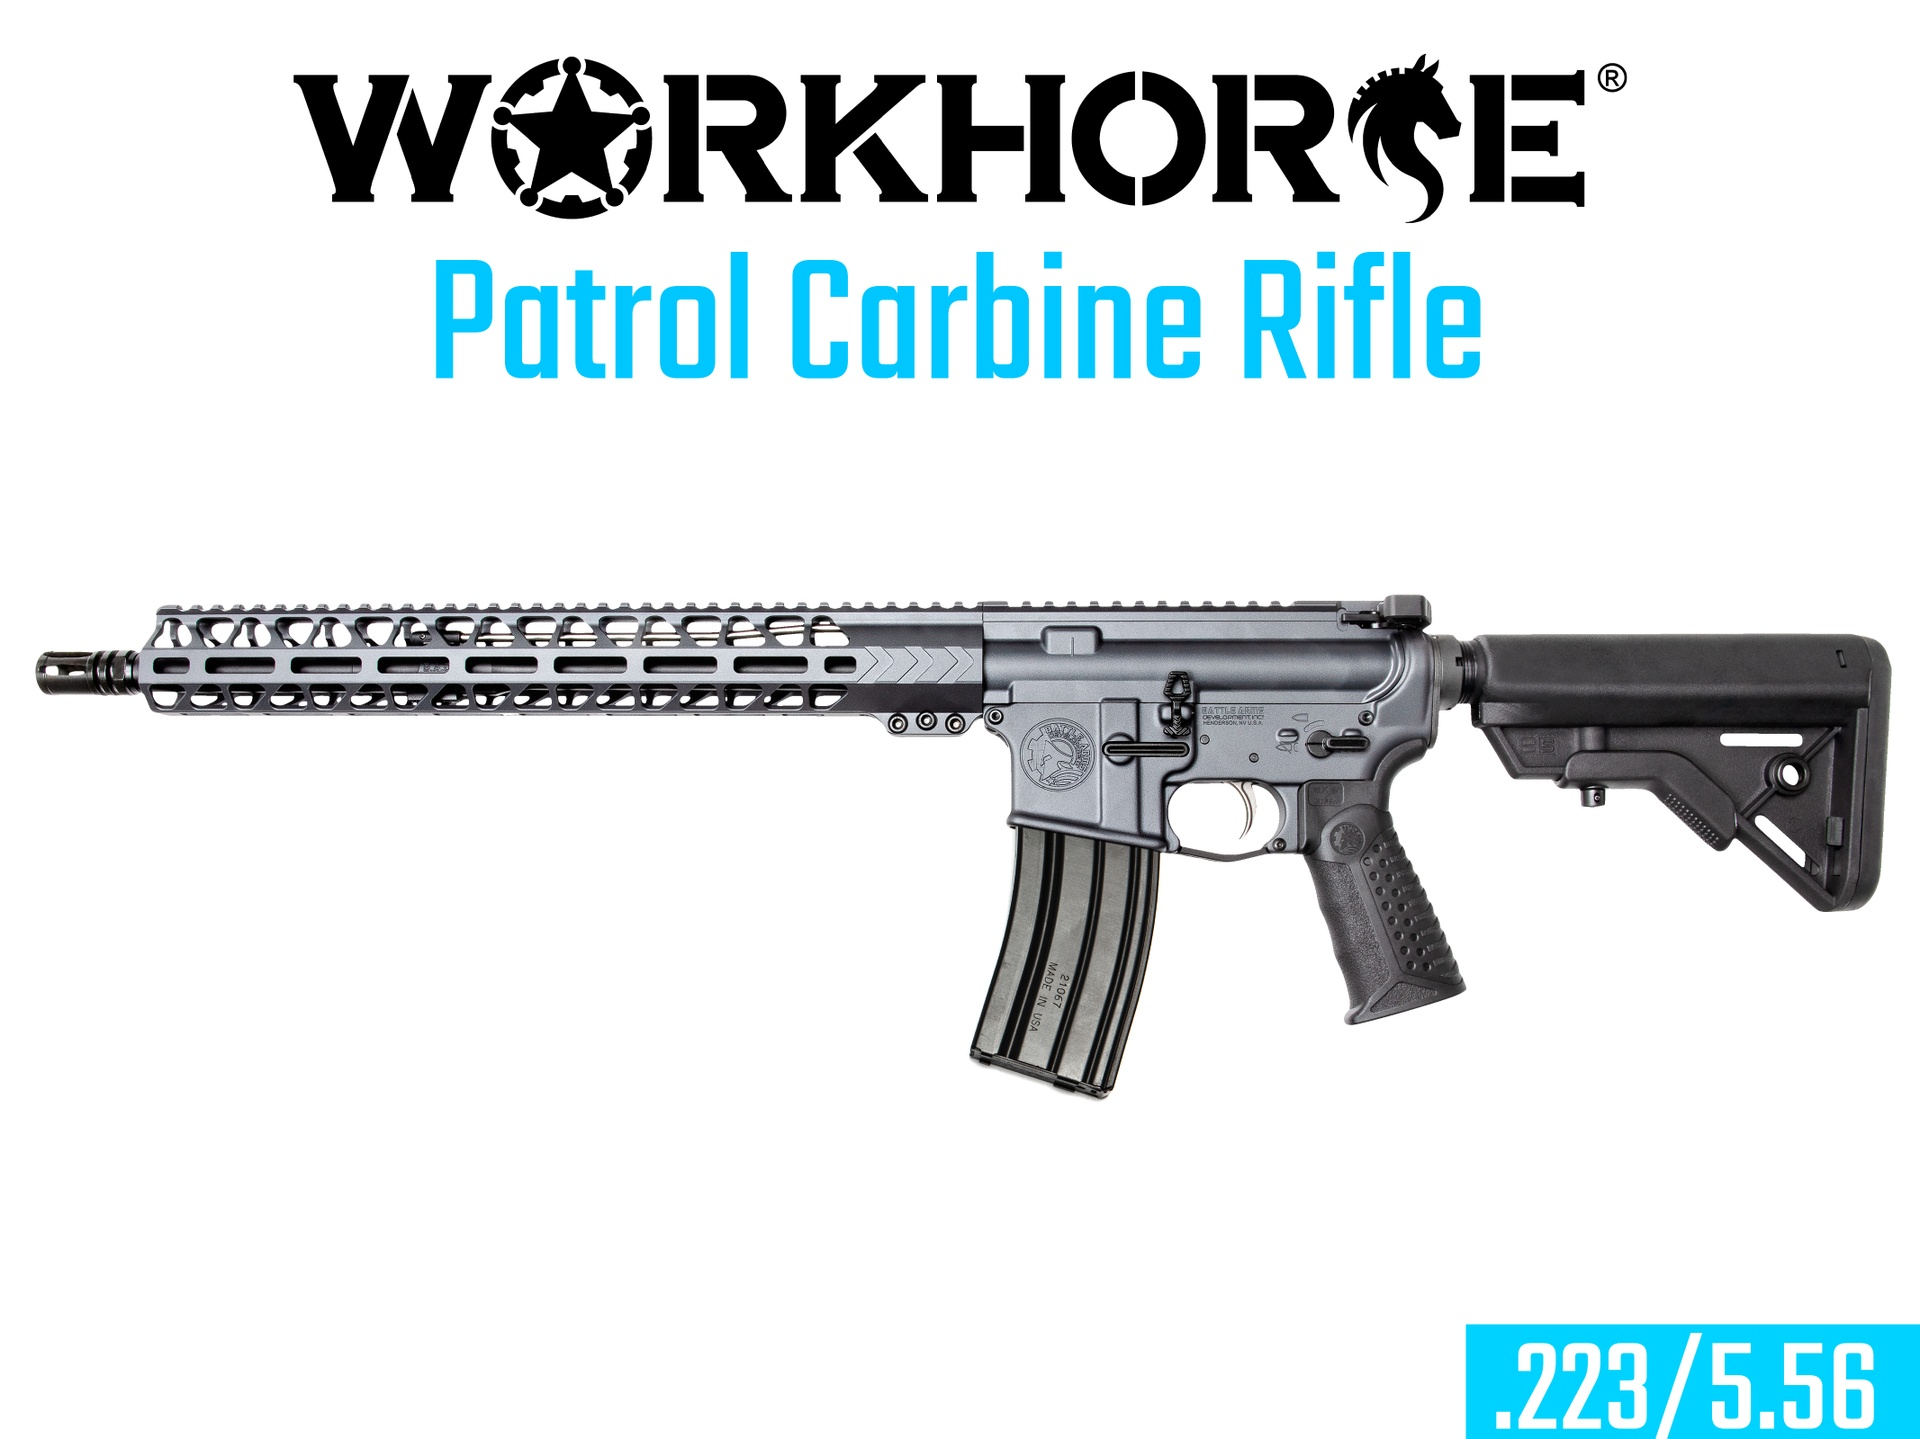 WORKHORSE™ PATROL CARBINE RIFLE